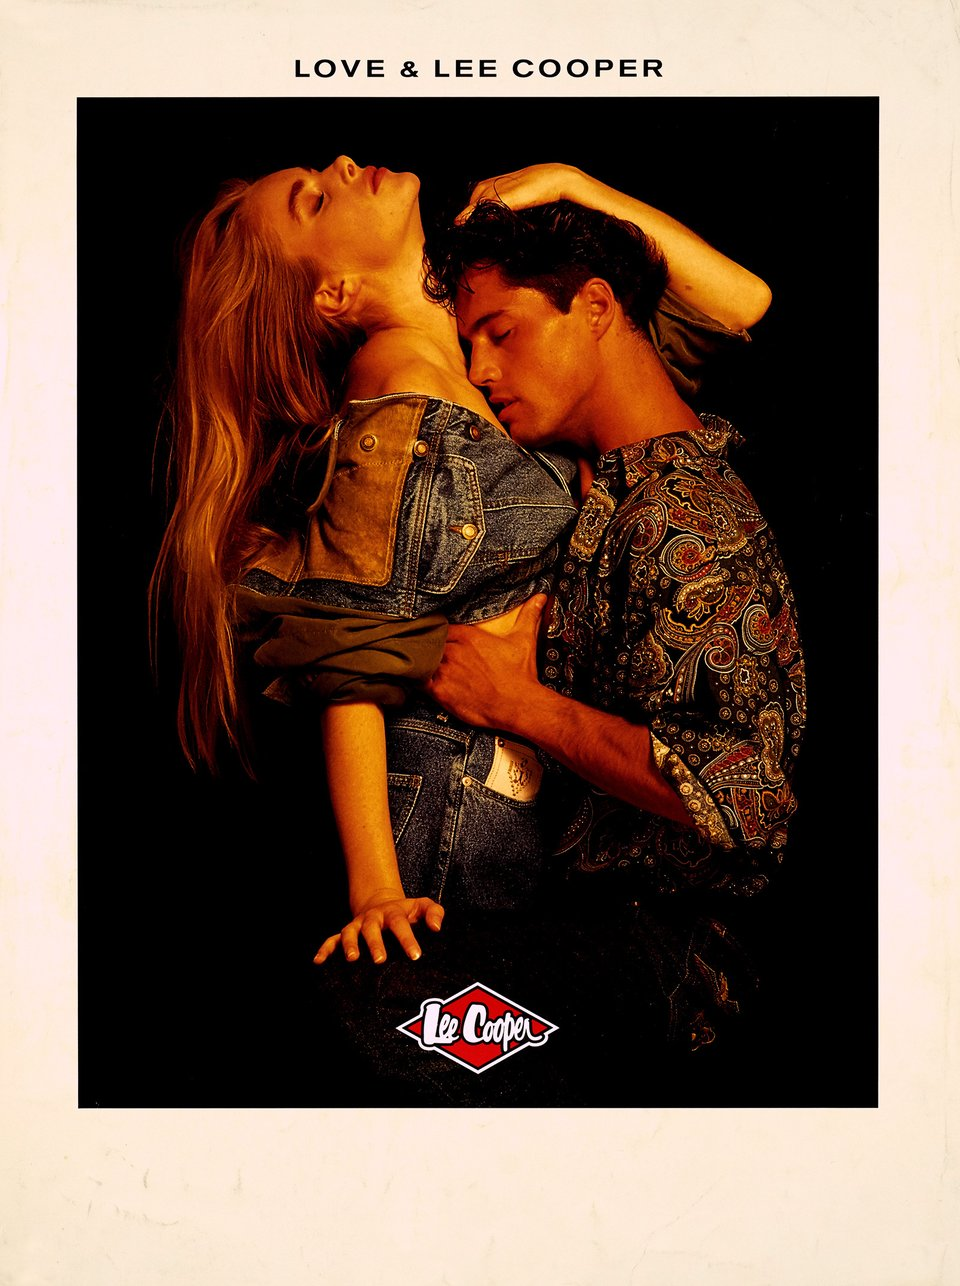 Love & Lee Cooper – Affiche ancienne –  ANONYME – 1980